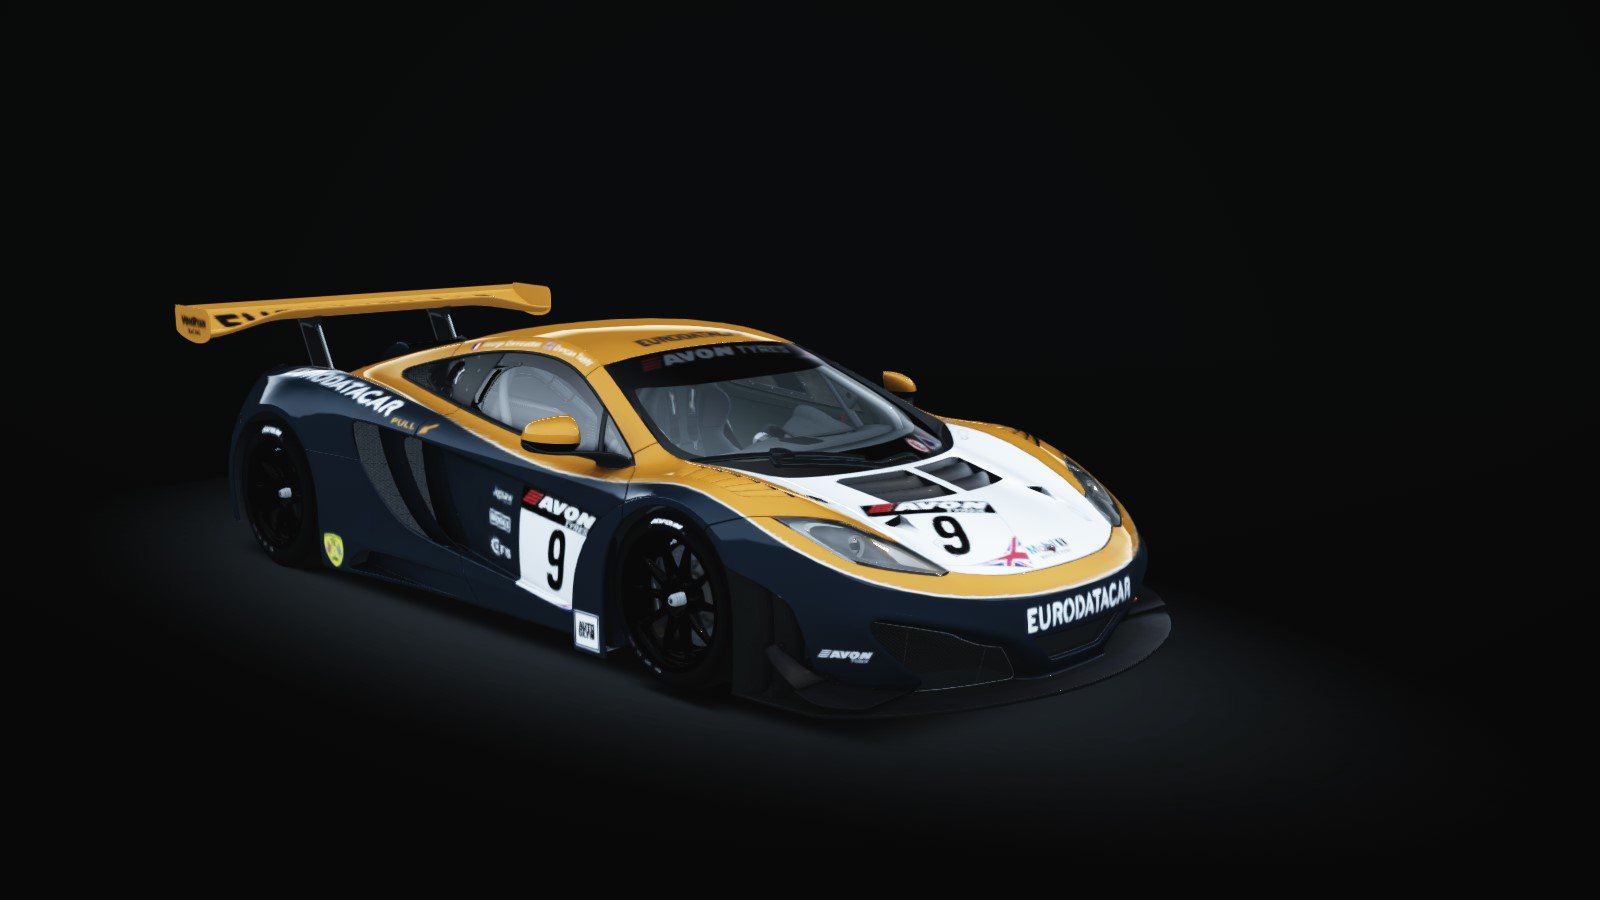 Showroom_mclaren_mp412c_gt3_16-4-2015-1-19-47.jpg